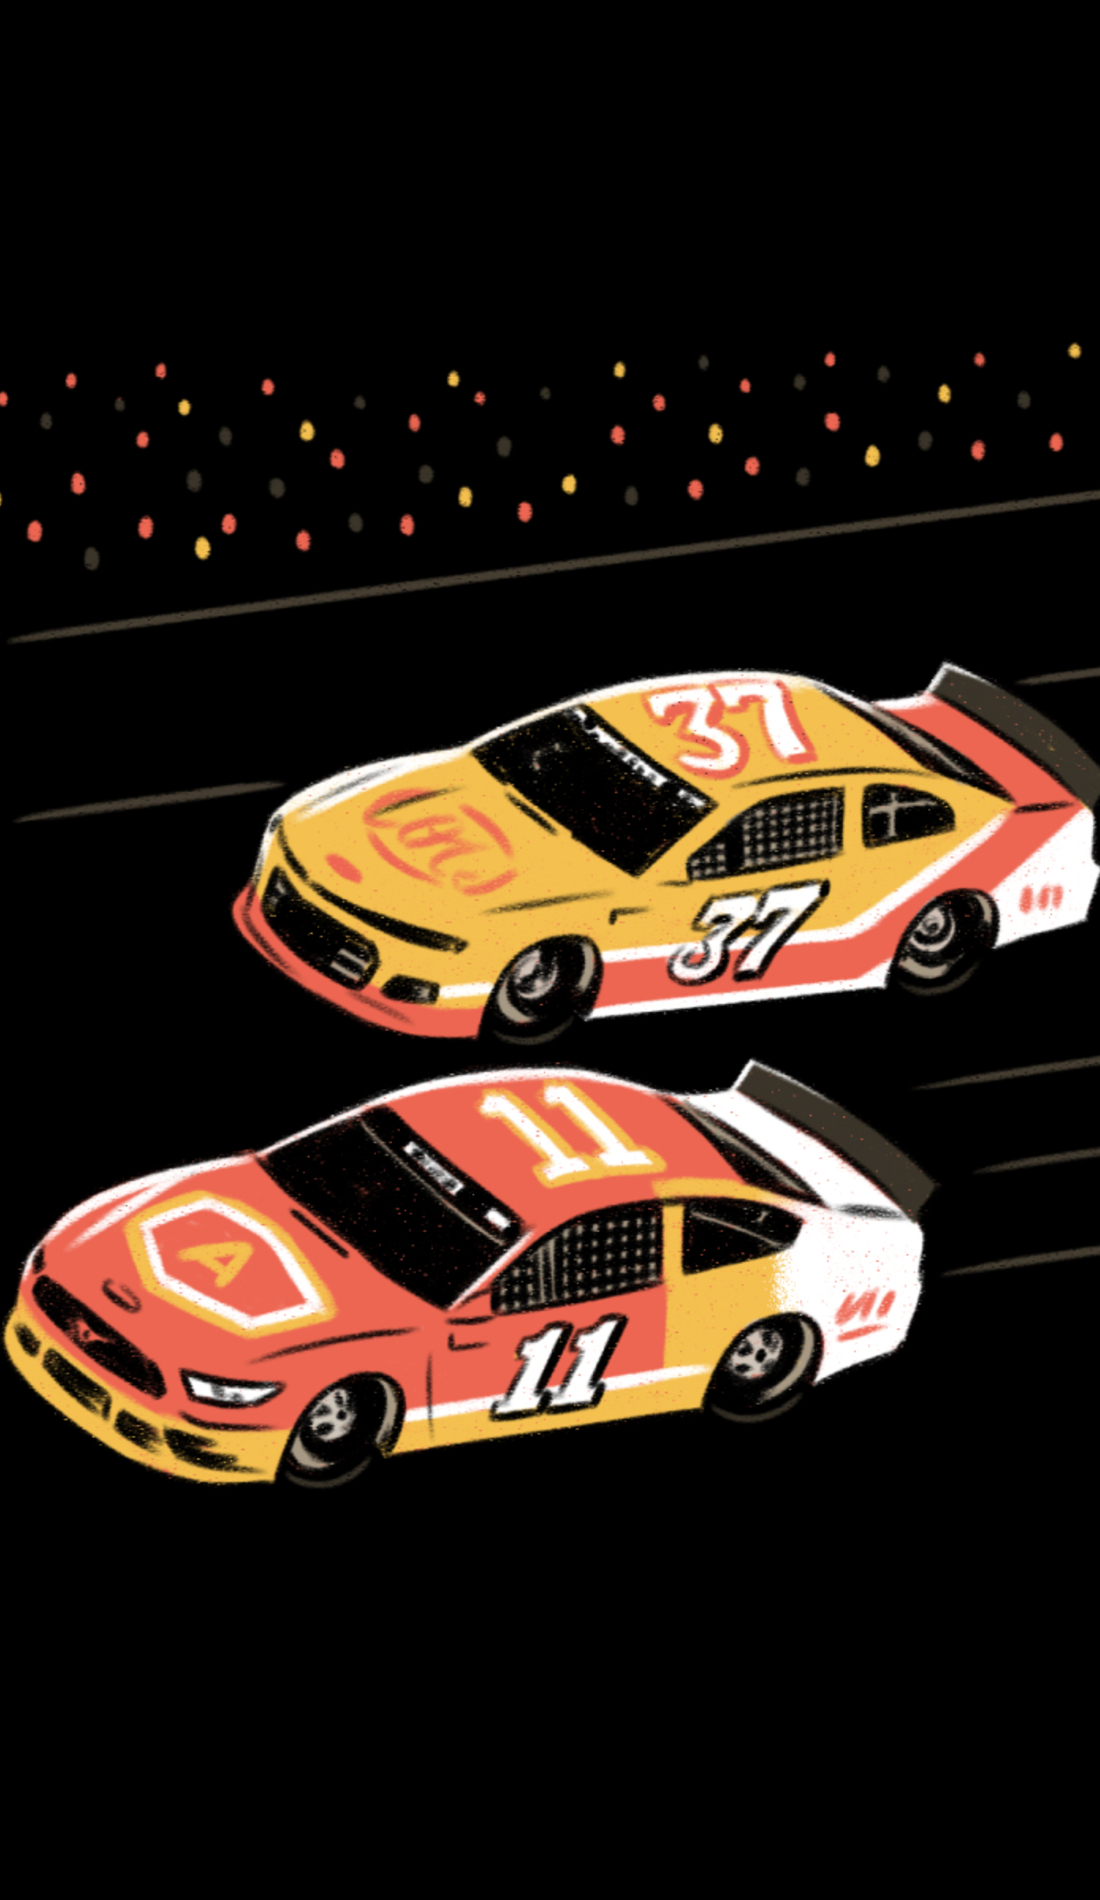 A AAA Texas 500 live event